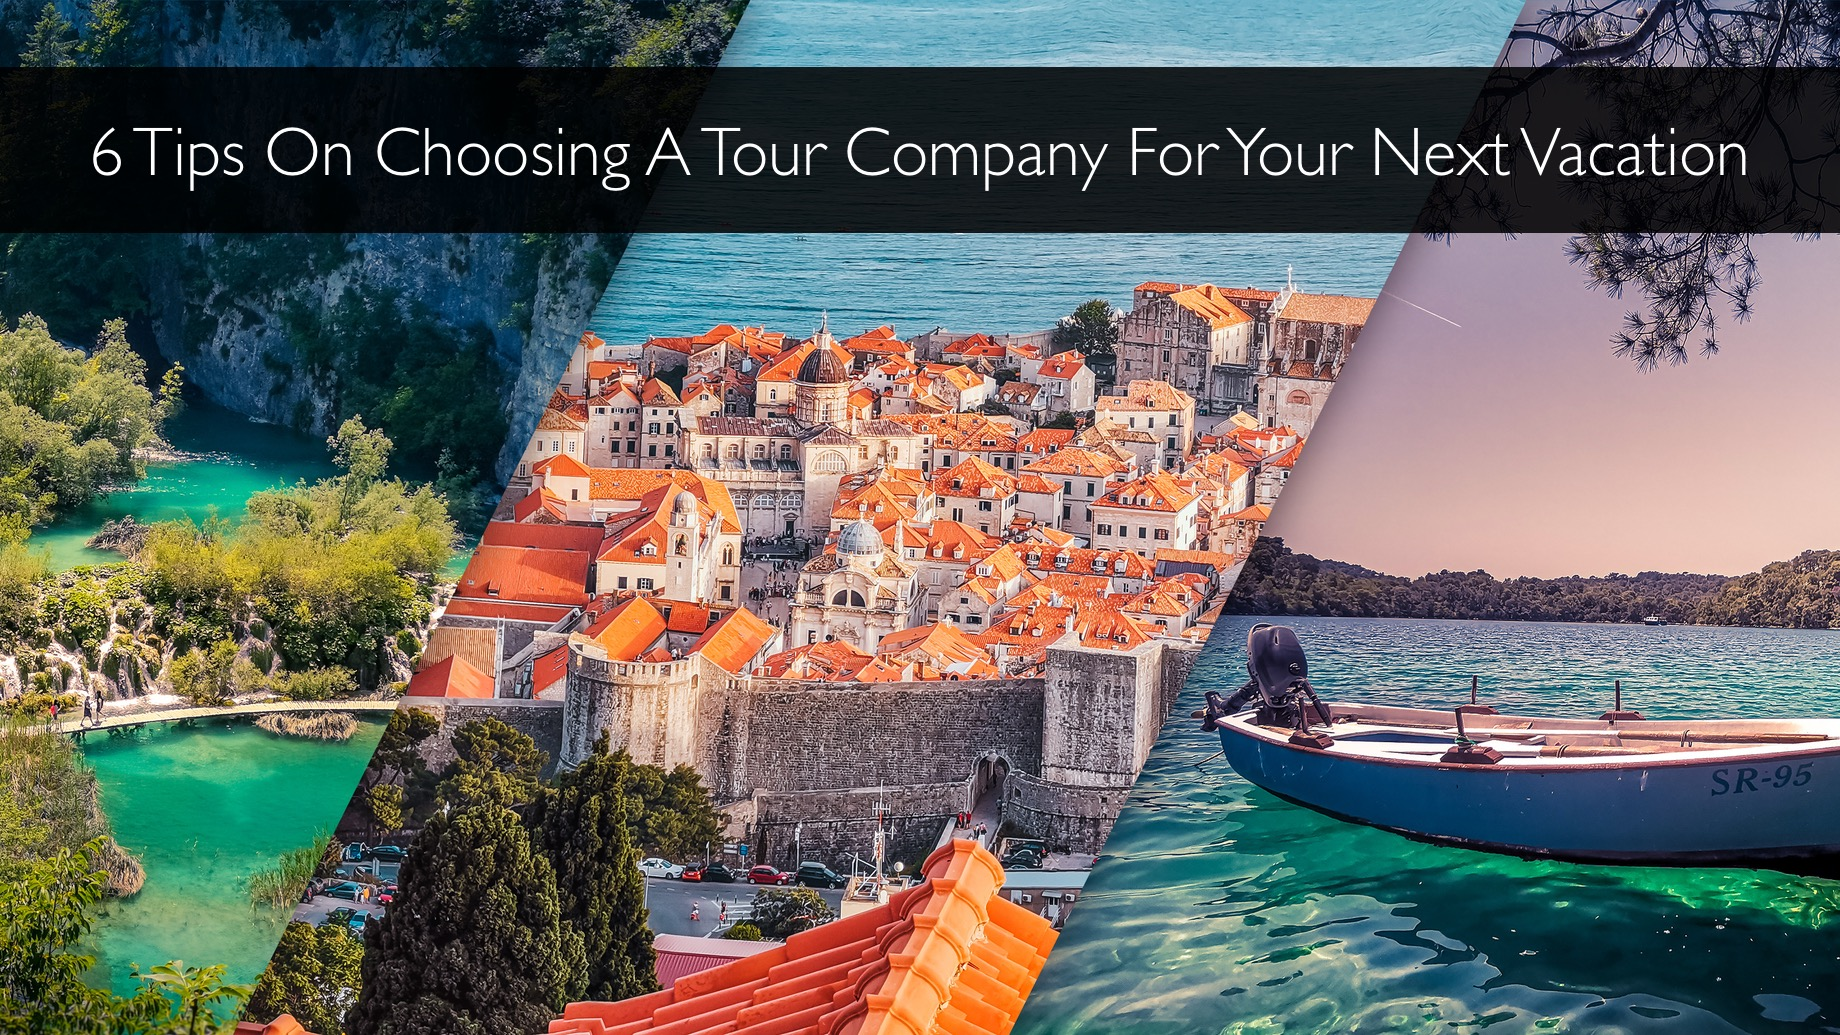 6 Tips On Choosing A Tour Company For Your Next Vacation